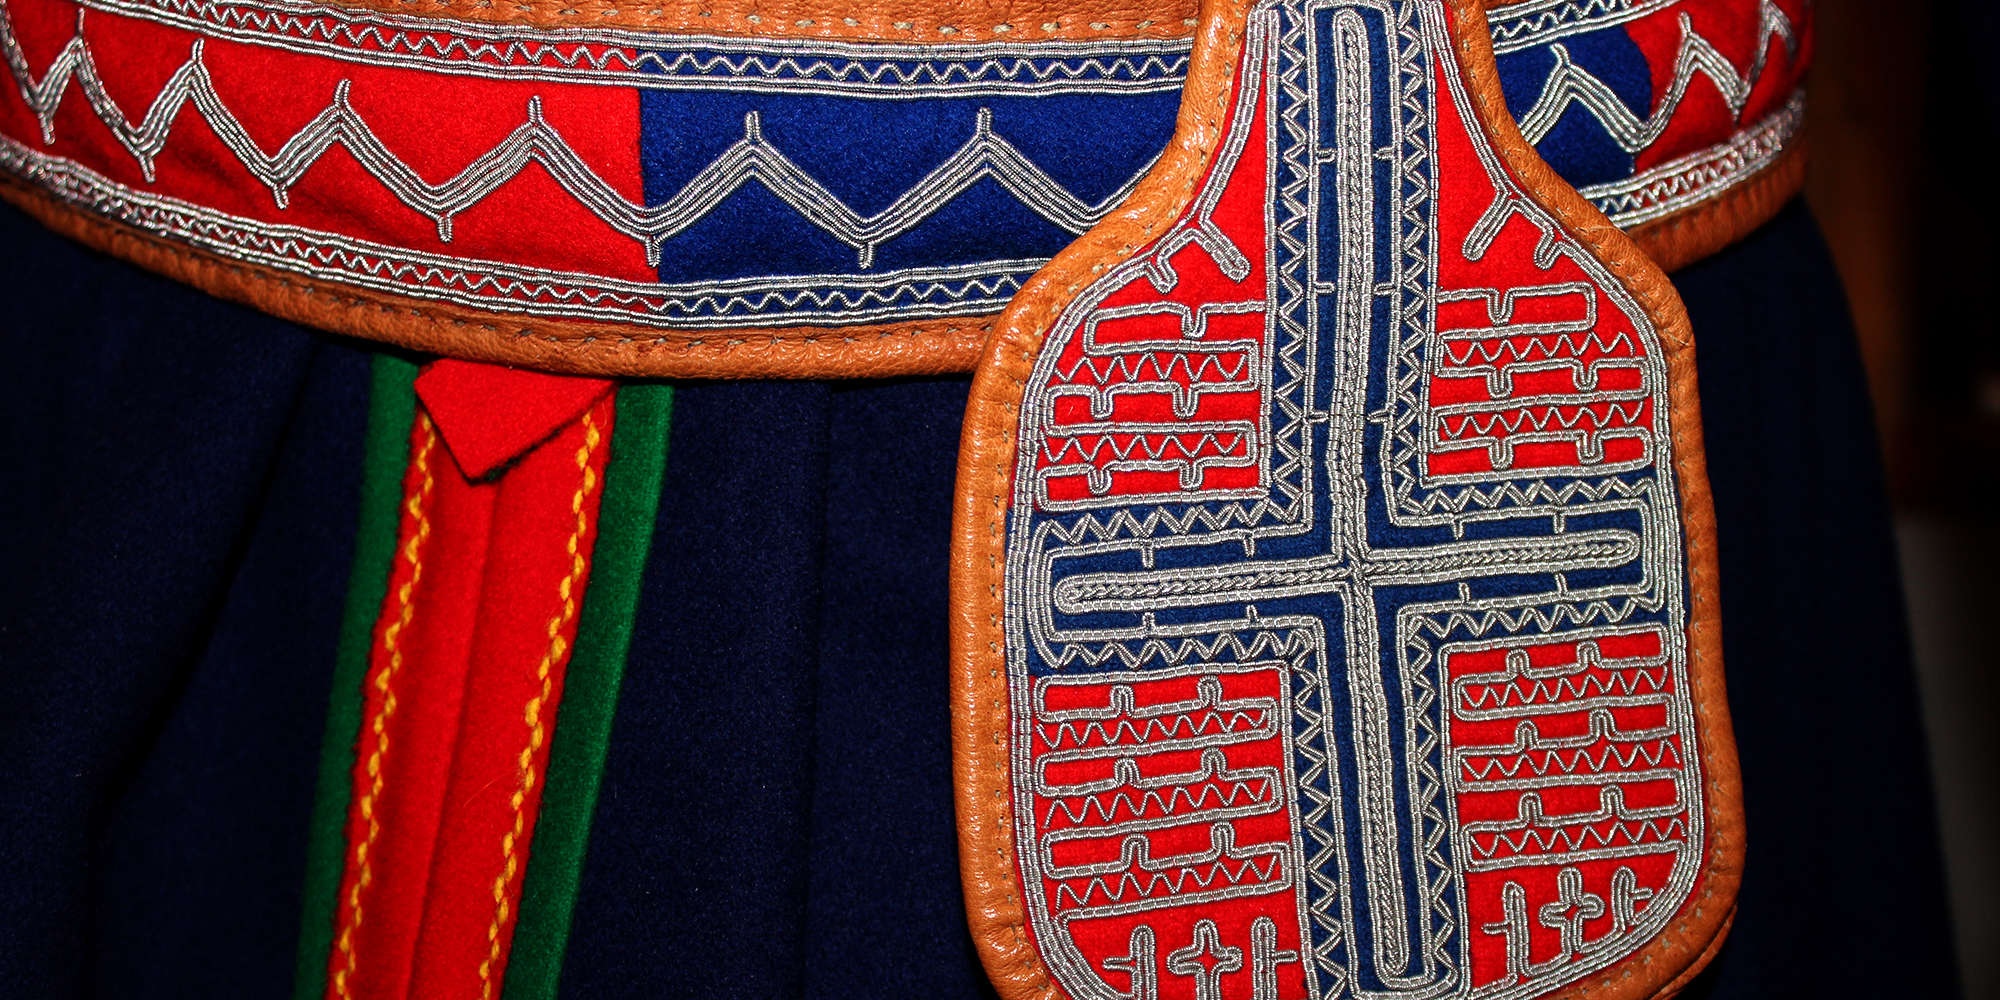 Saemien Sijte - traditional belt for a man. South Sami museum in Snåsa . Copyright: Saemien Sijte